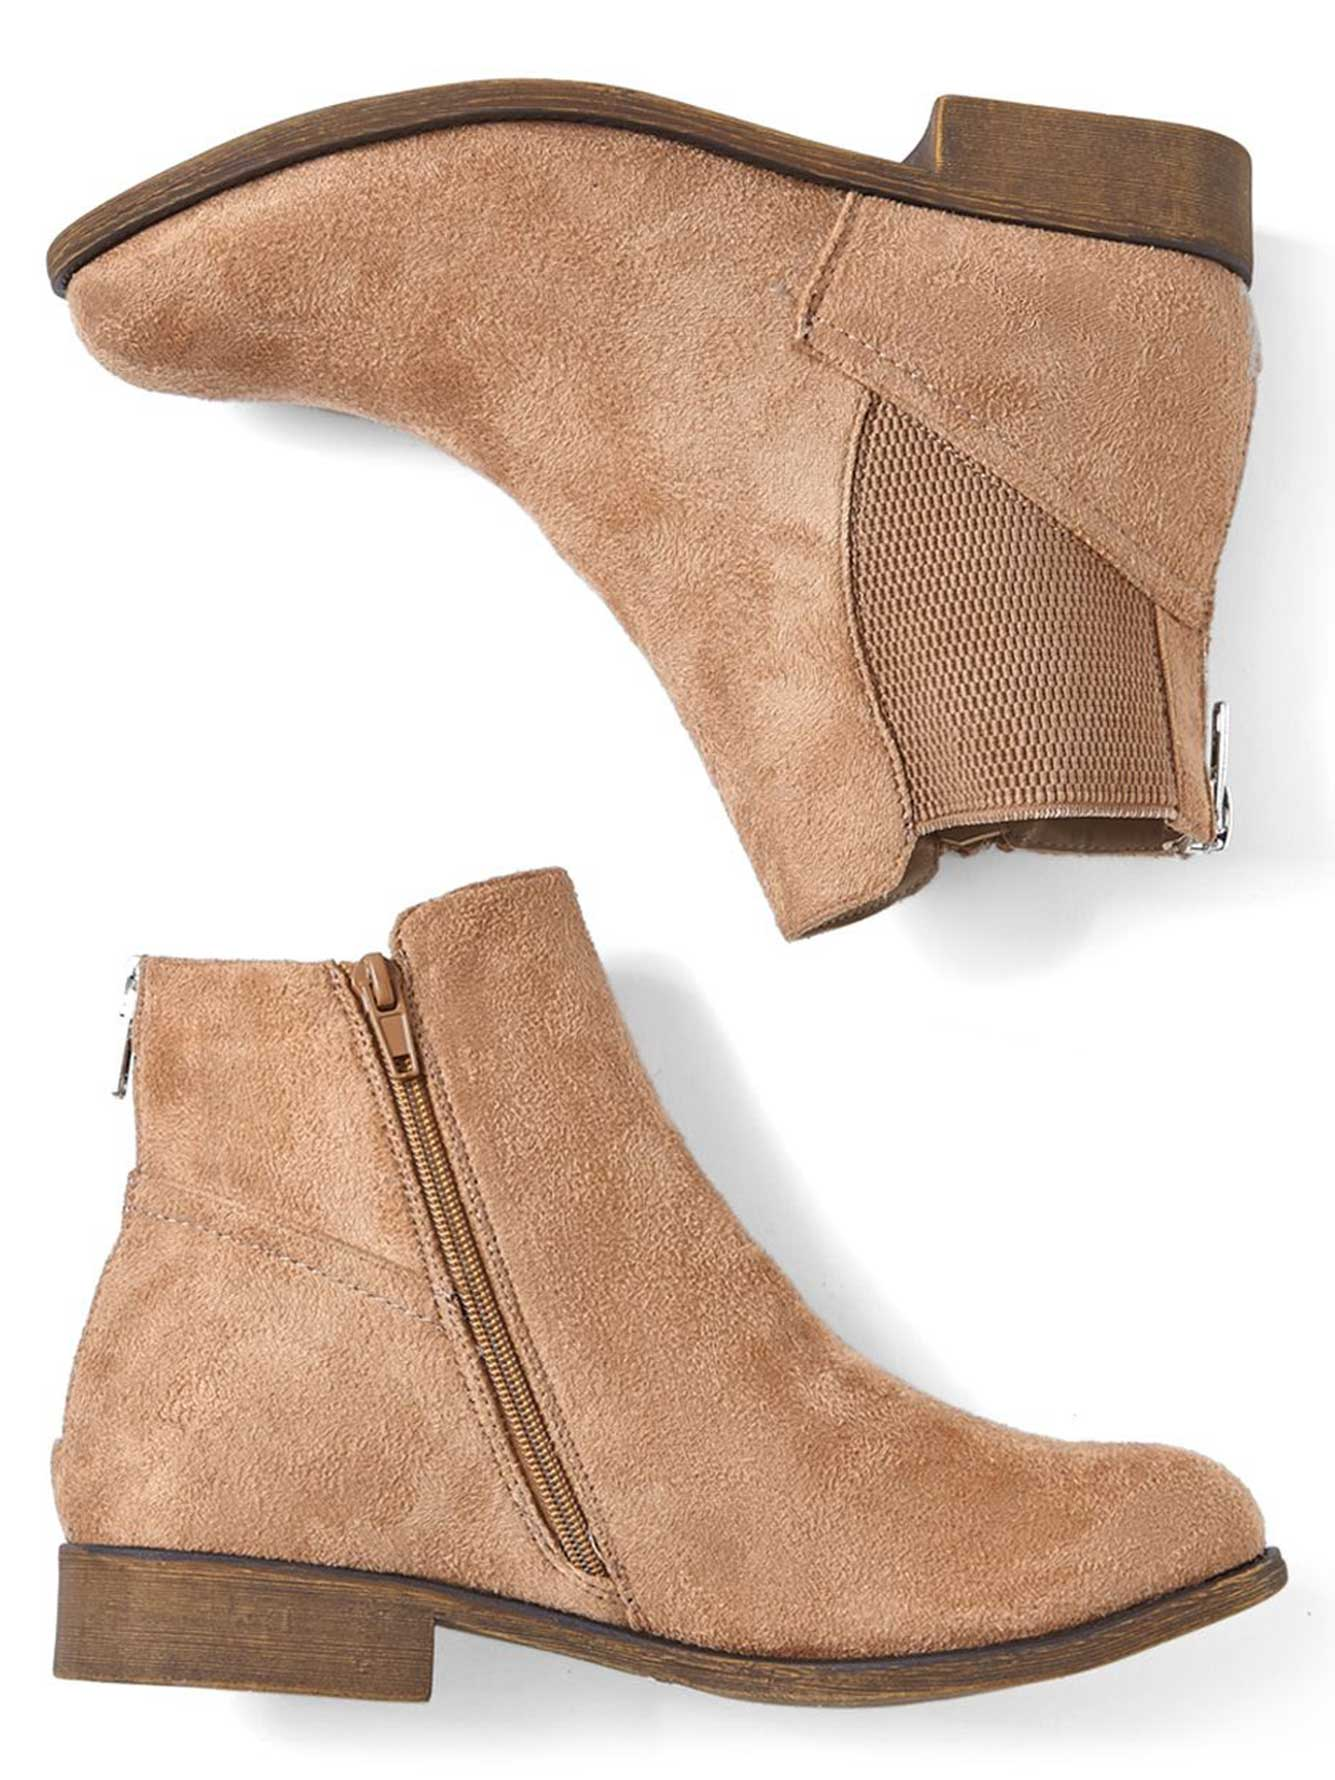 Women's Booties: Free Shipping on orders over $45 at Find the latest styles of Booties from cpdlp9wivh506.ga - Your Online Women's Shoes Store! Get 5% in rewards with Club O! Journee Collection 'Livvy' Women's Faux Suede Comfort Sole Tassel Booties. 46 Reviews. More Options.